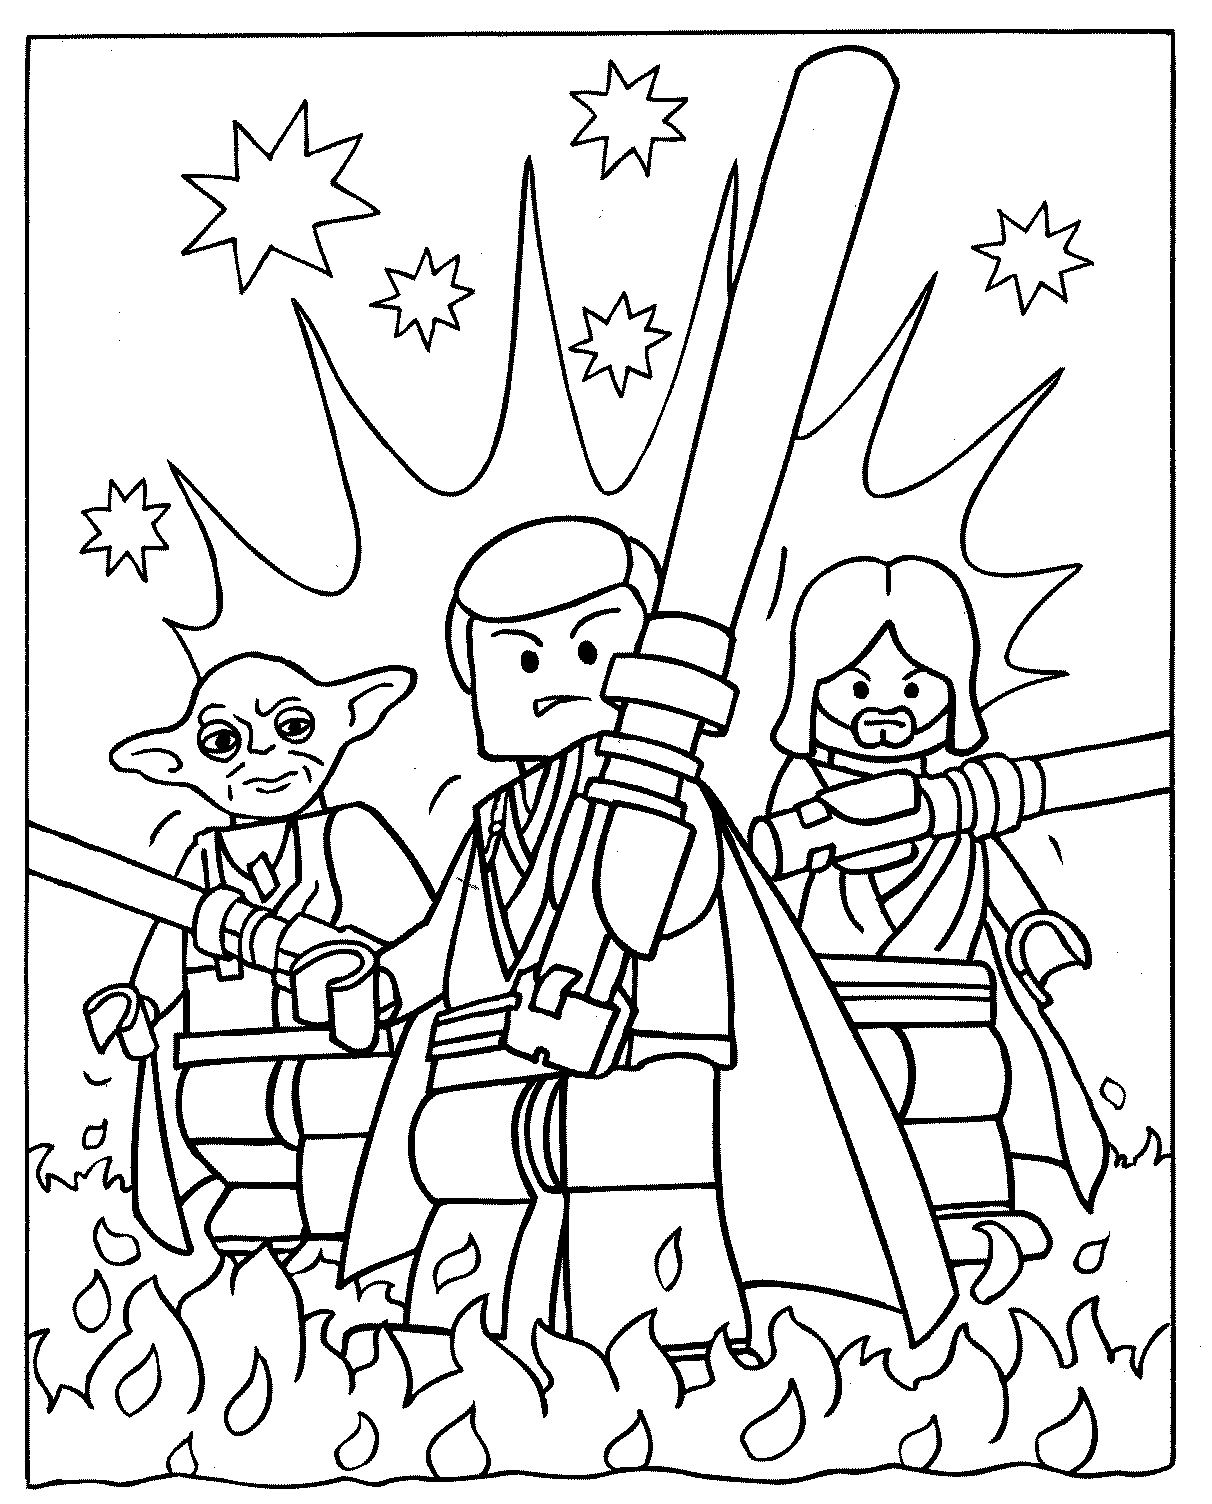 lego coloring pages - photo#41